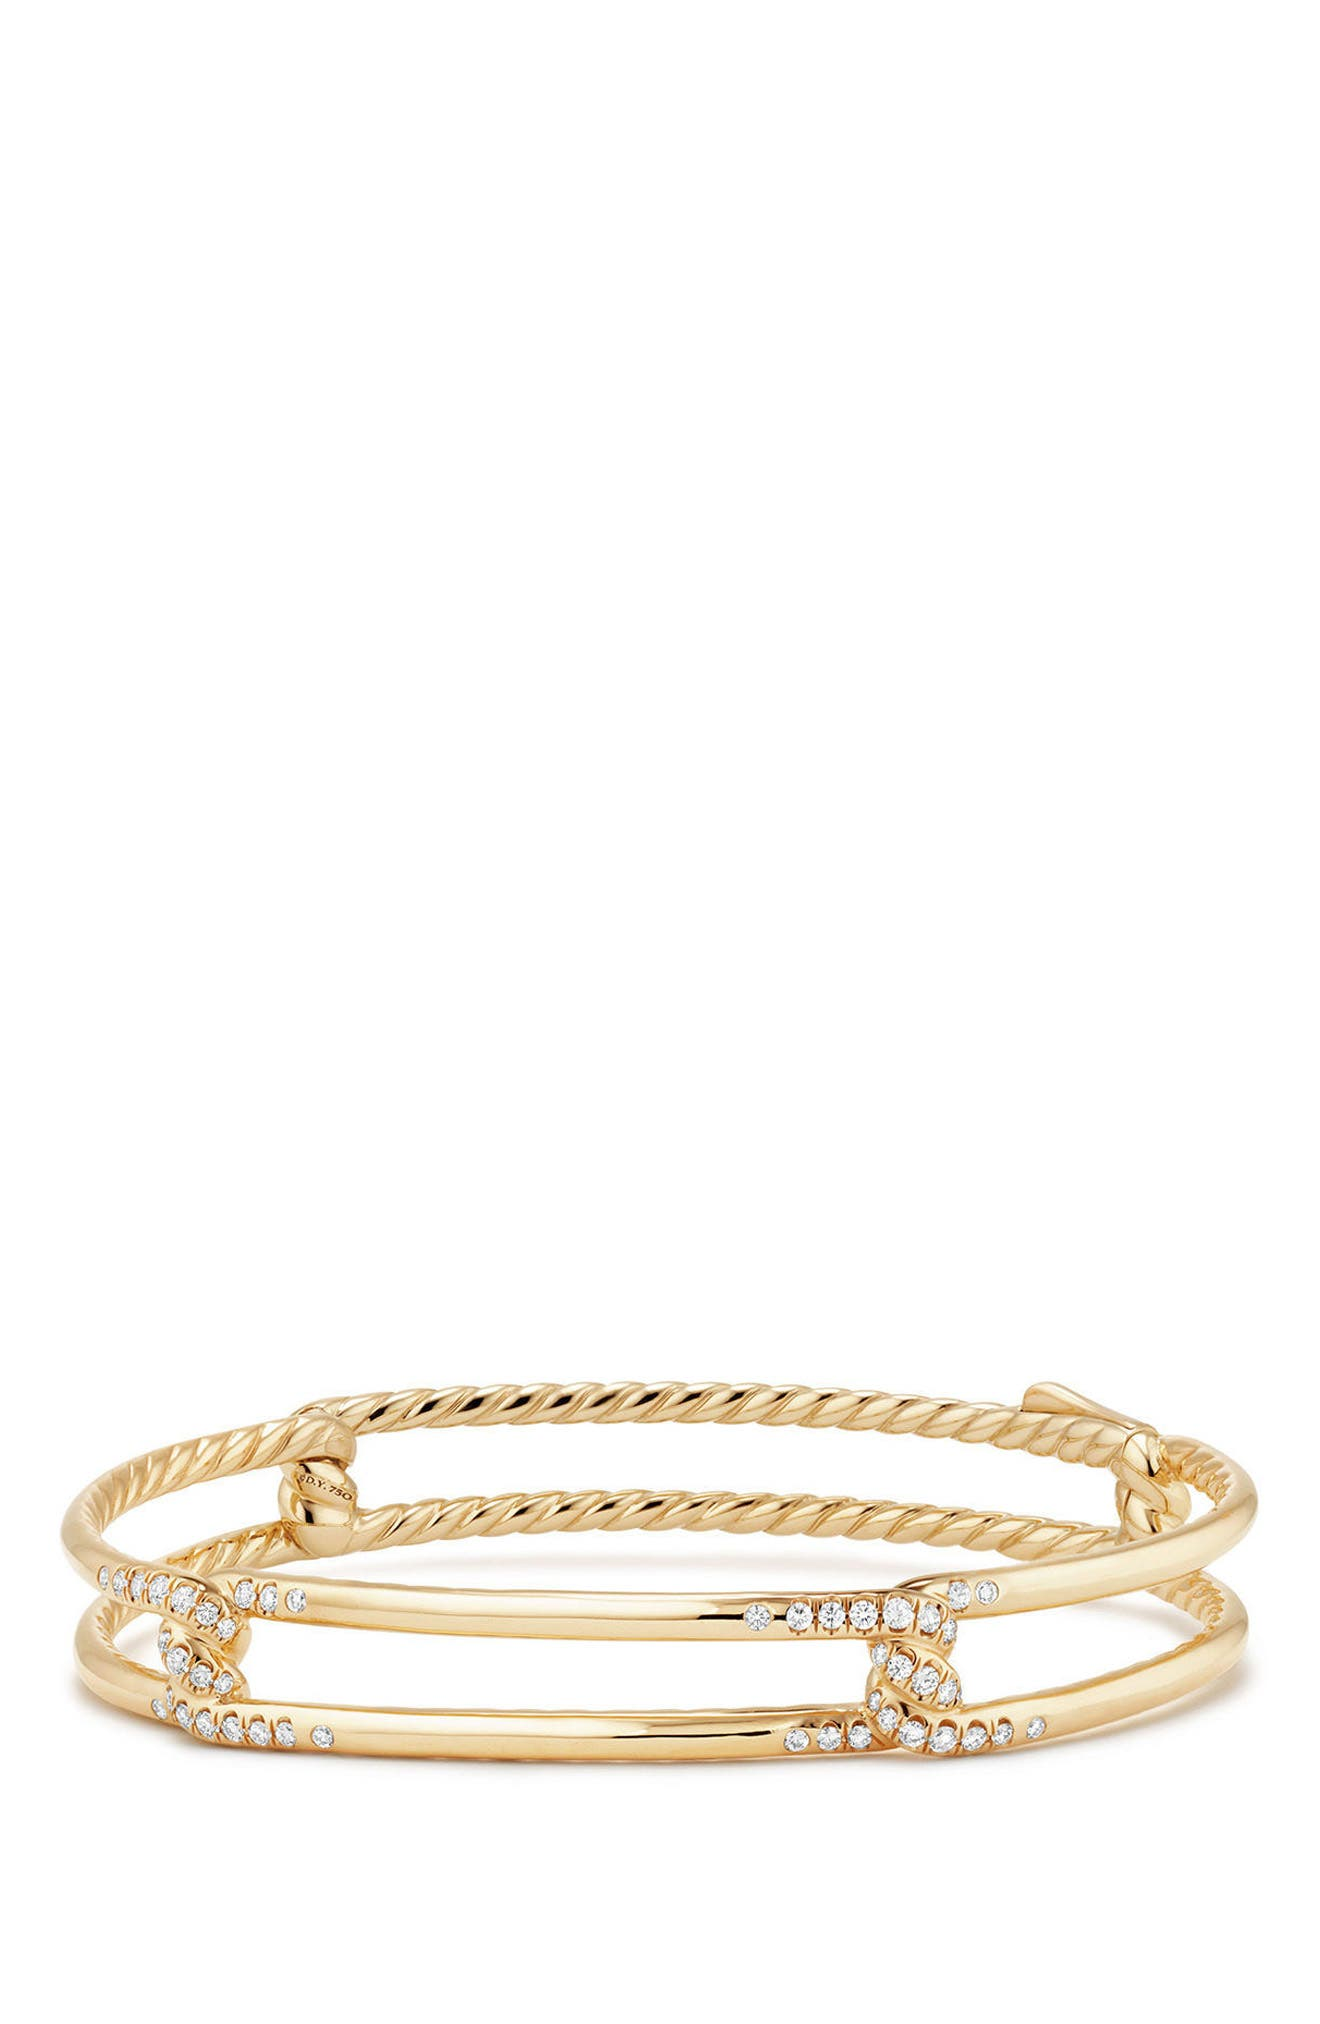 Main Image - David Yurman Continuance Bracelet with Diamond in 18K Gold